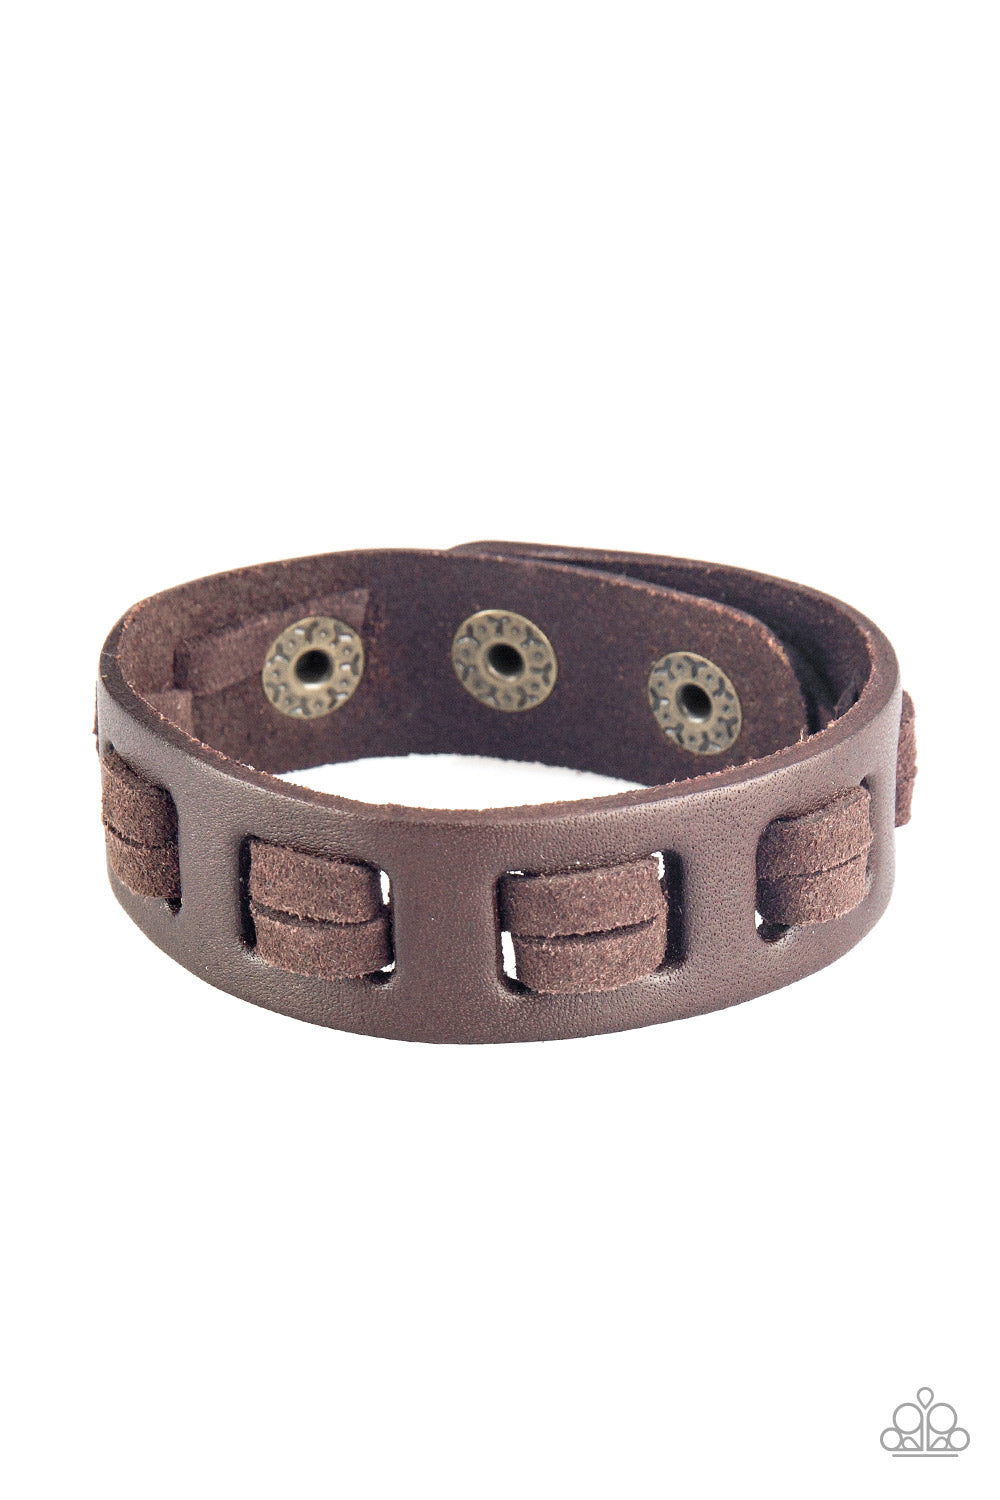 "Paparazzi Accessories - Paparazzi ""Bring Out The West In You"" Brown Suede Leather Urban Wrap Bracelet Unisex - Bracelets"